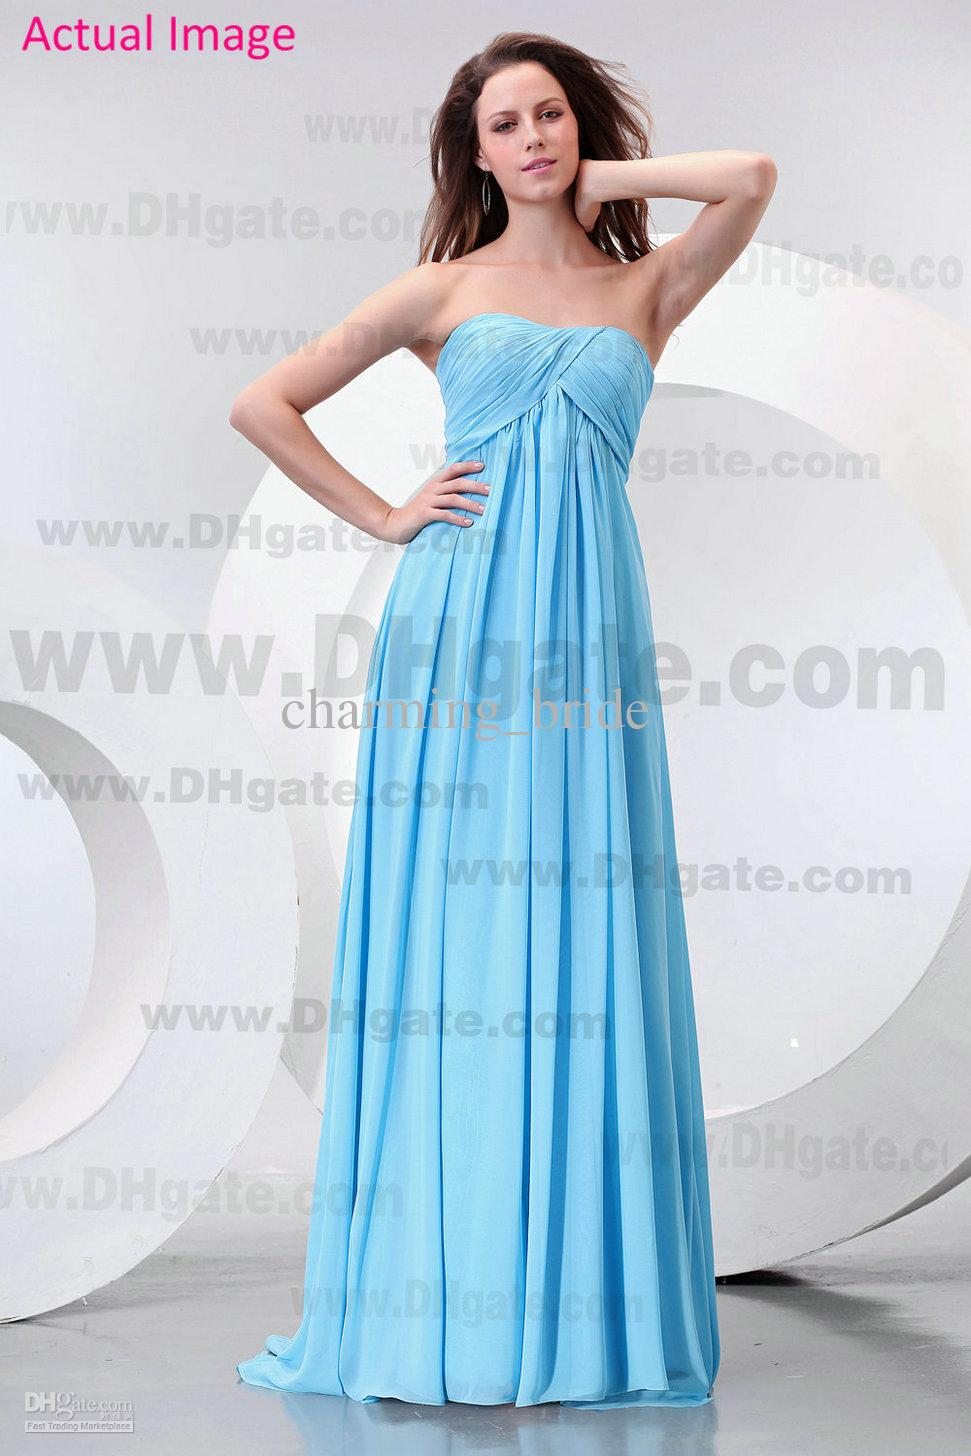 2013 cheap pleated light sky blue bridesmaid dresses sweetheart 2013 cheap pleated light sky blue bridesmaid dresses sweetheart party dresses zip back cocktail dresses sweep train chiffon burnt orange bridesmaid dresses ombrellifo Images